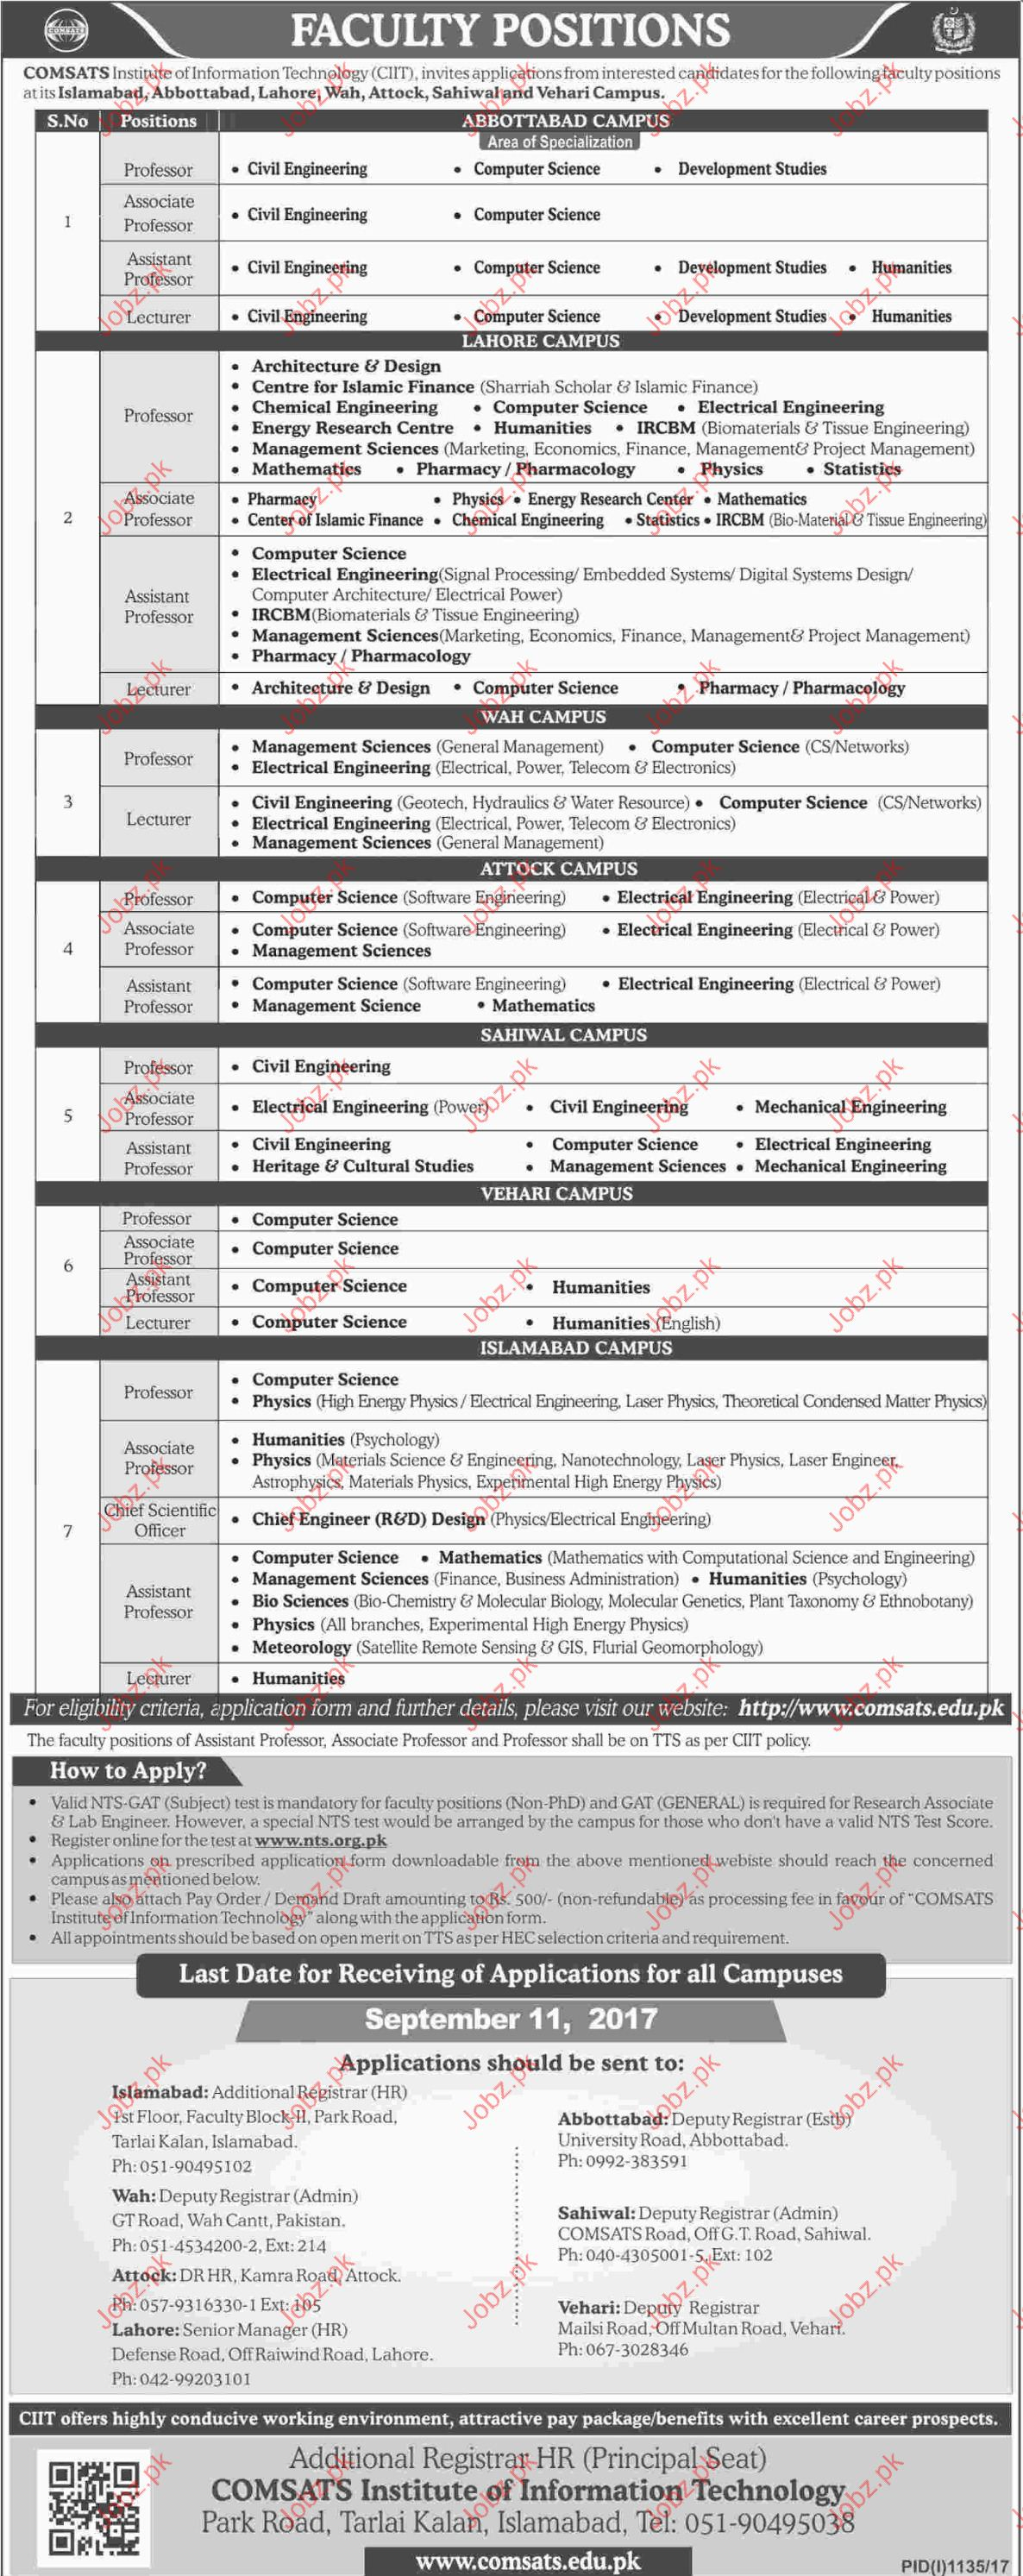 COMSATS Institute of Information Technology Jobs Opportunity